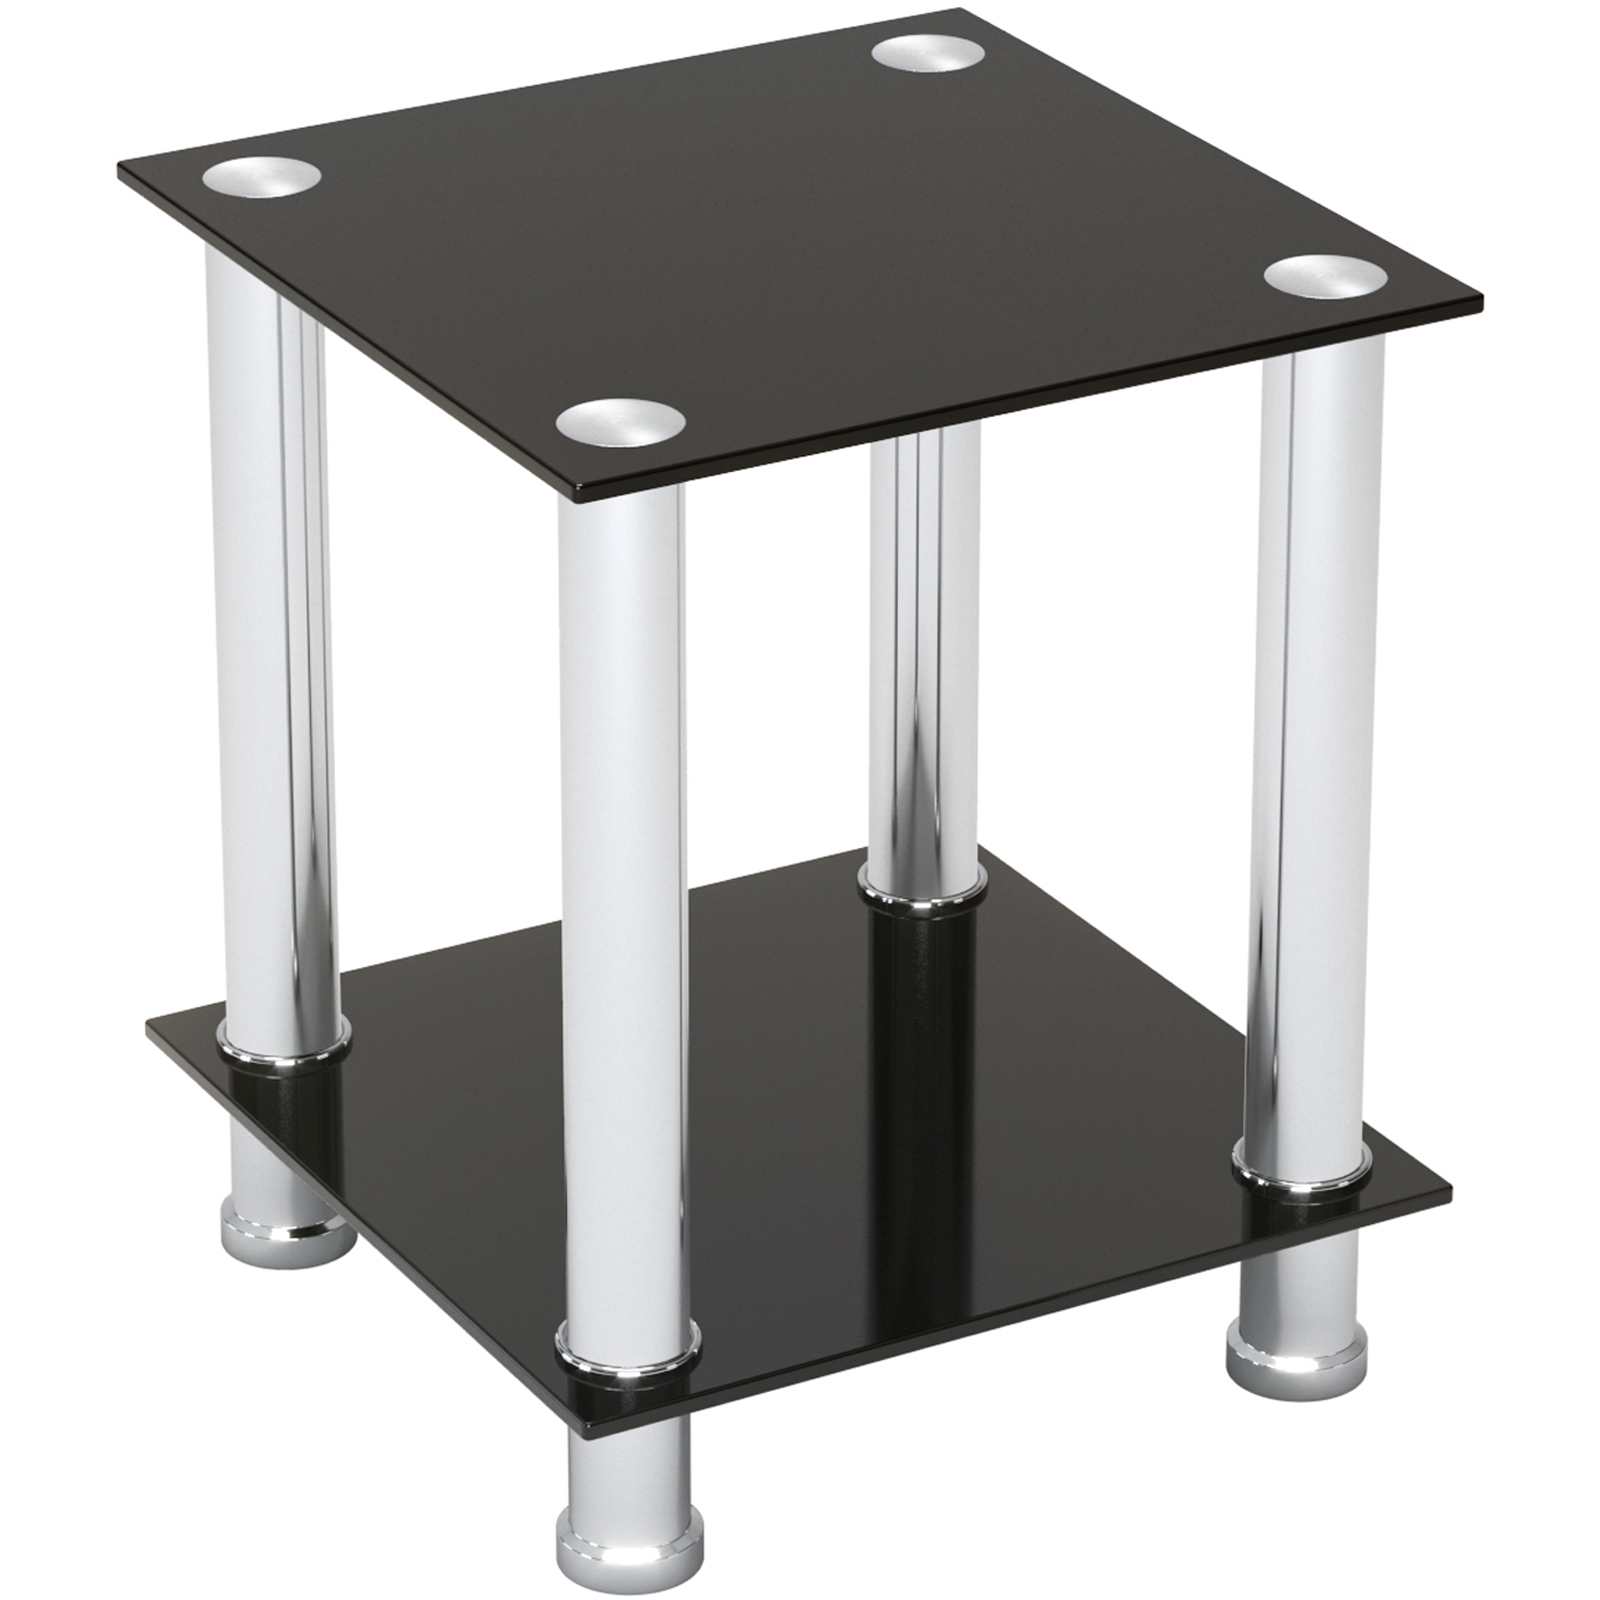 Audrey End Table Sofa Table Night Table With Tempered Glass Shelves Chrome Frame Black Glass